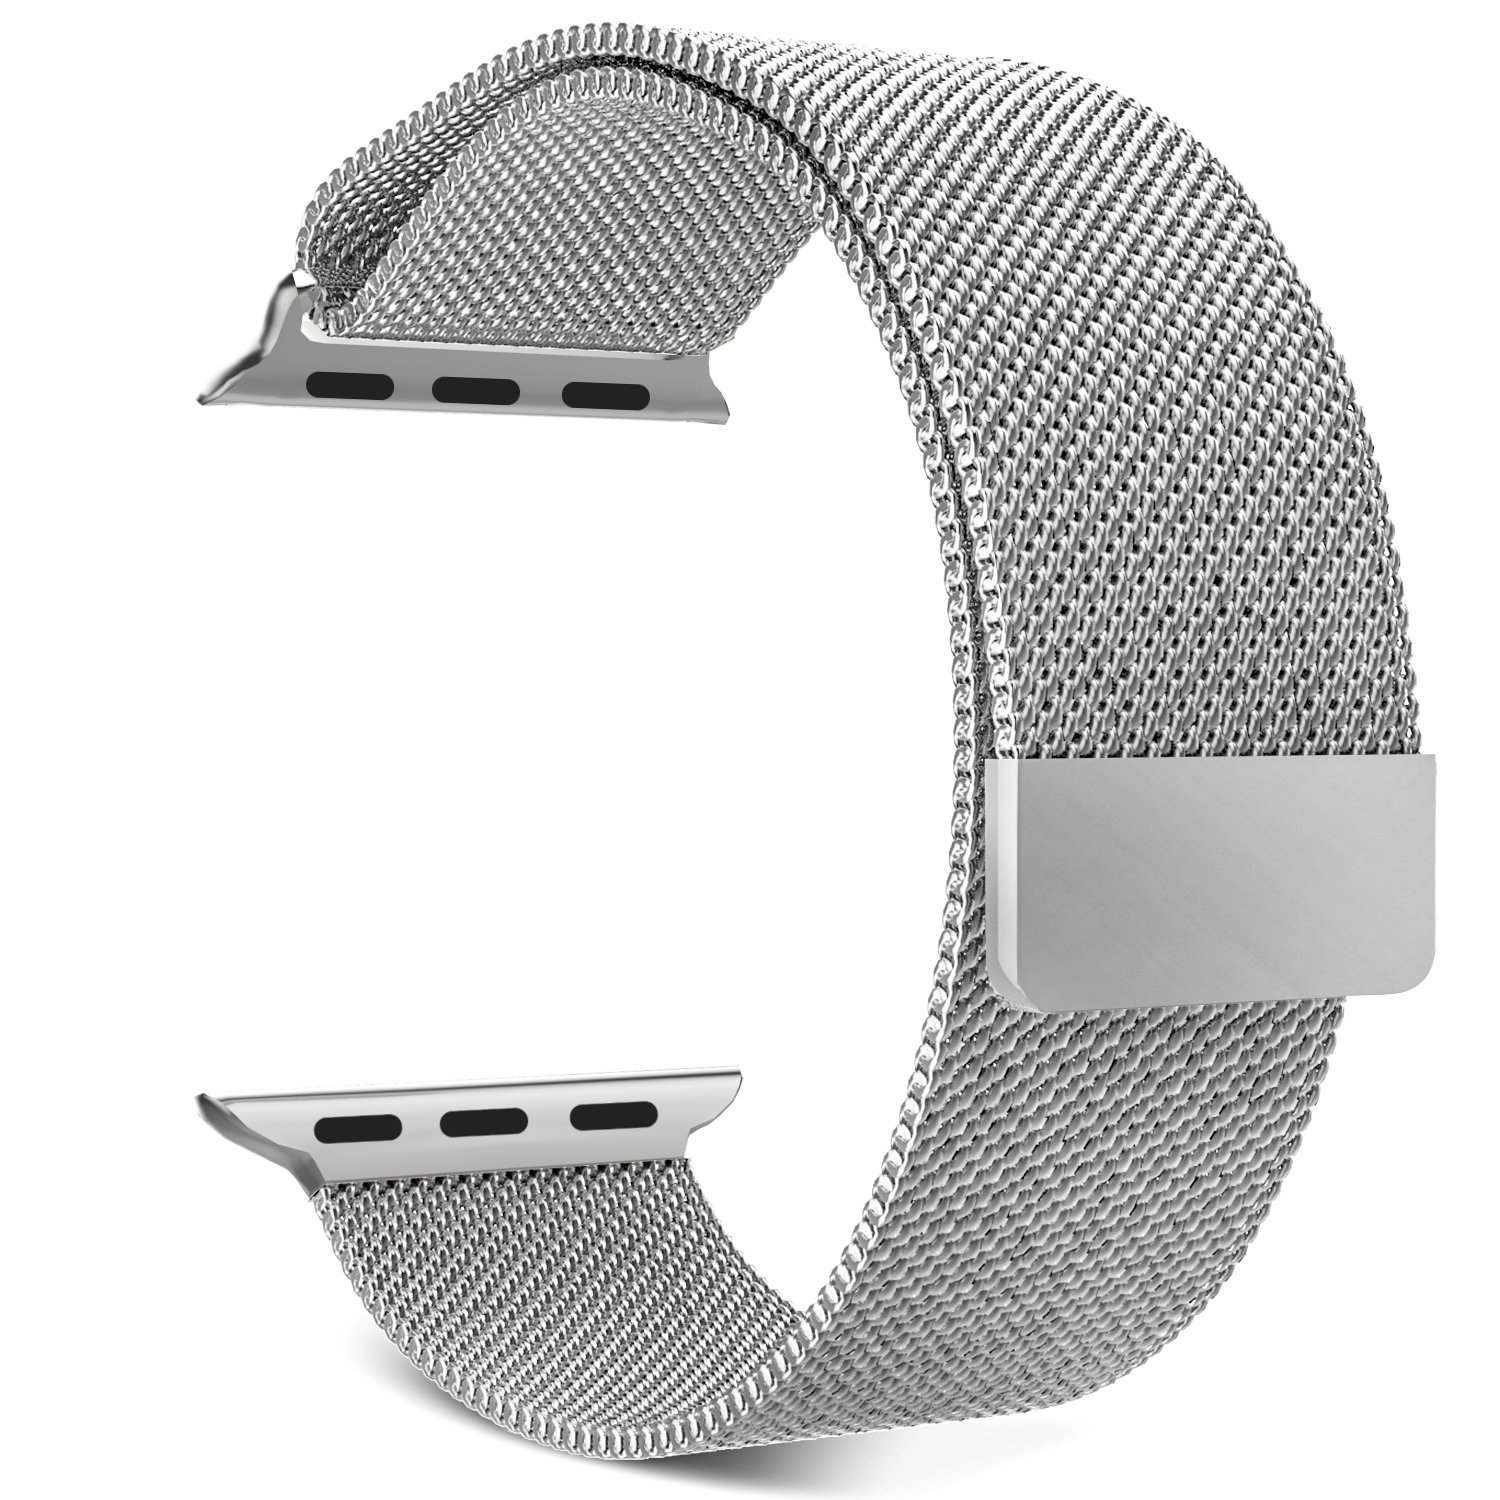 Apple Watch Band Series 1 Series 2, MoKo Milanese Loop Stainless Steel Bracelet Smart Watch Strap for iWatch 38mm All Models with Unique Magnet Lock, No Buckle Needed - SILVER (Not Fit iWatch 42mm)